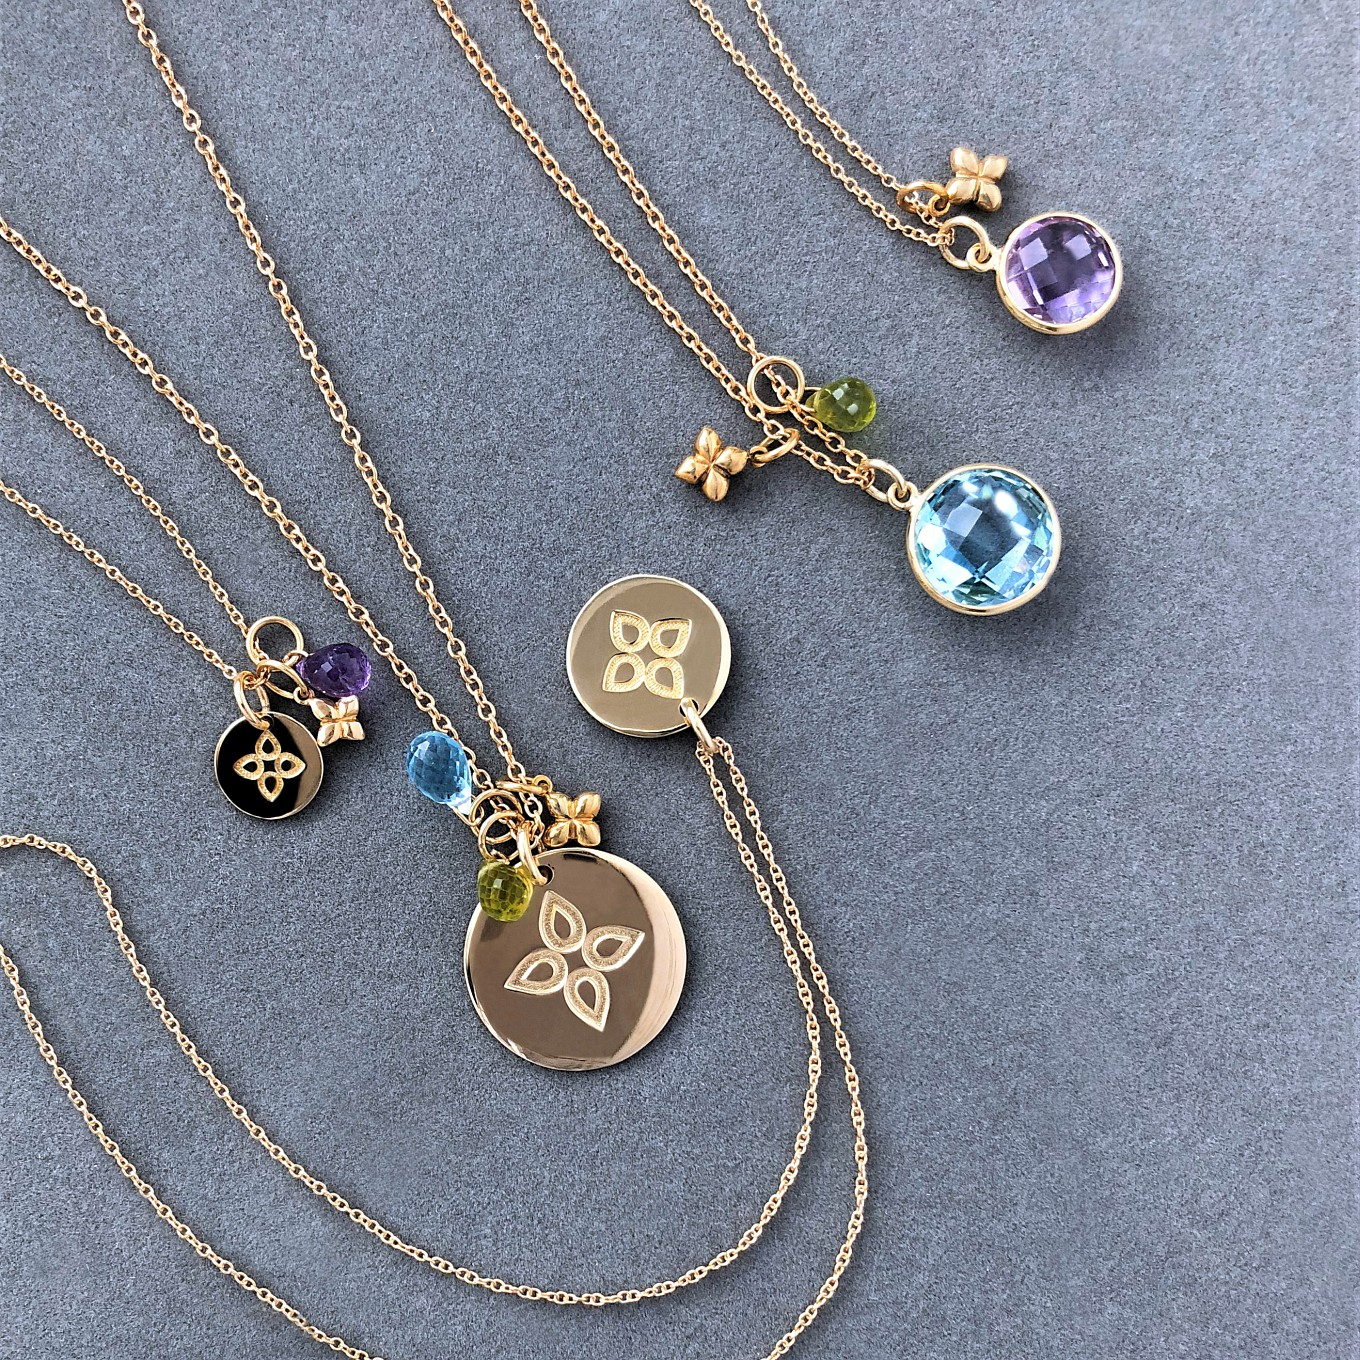 LOVE DISC & GEMSTONE PENDANTS PAIRED WITH GEMSTONE & SEVILLA CHARMS